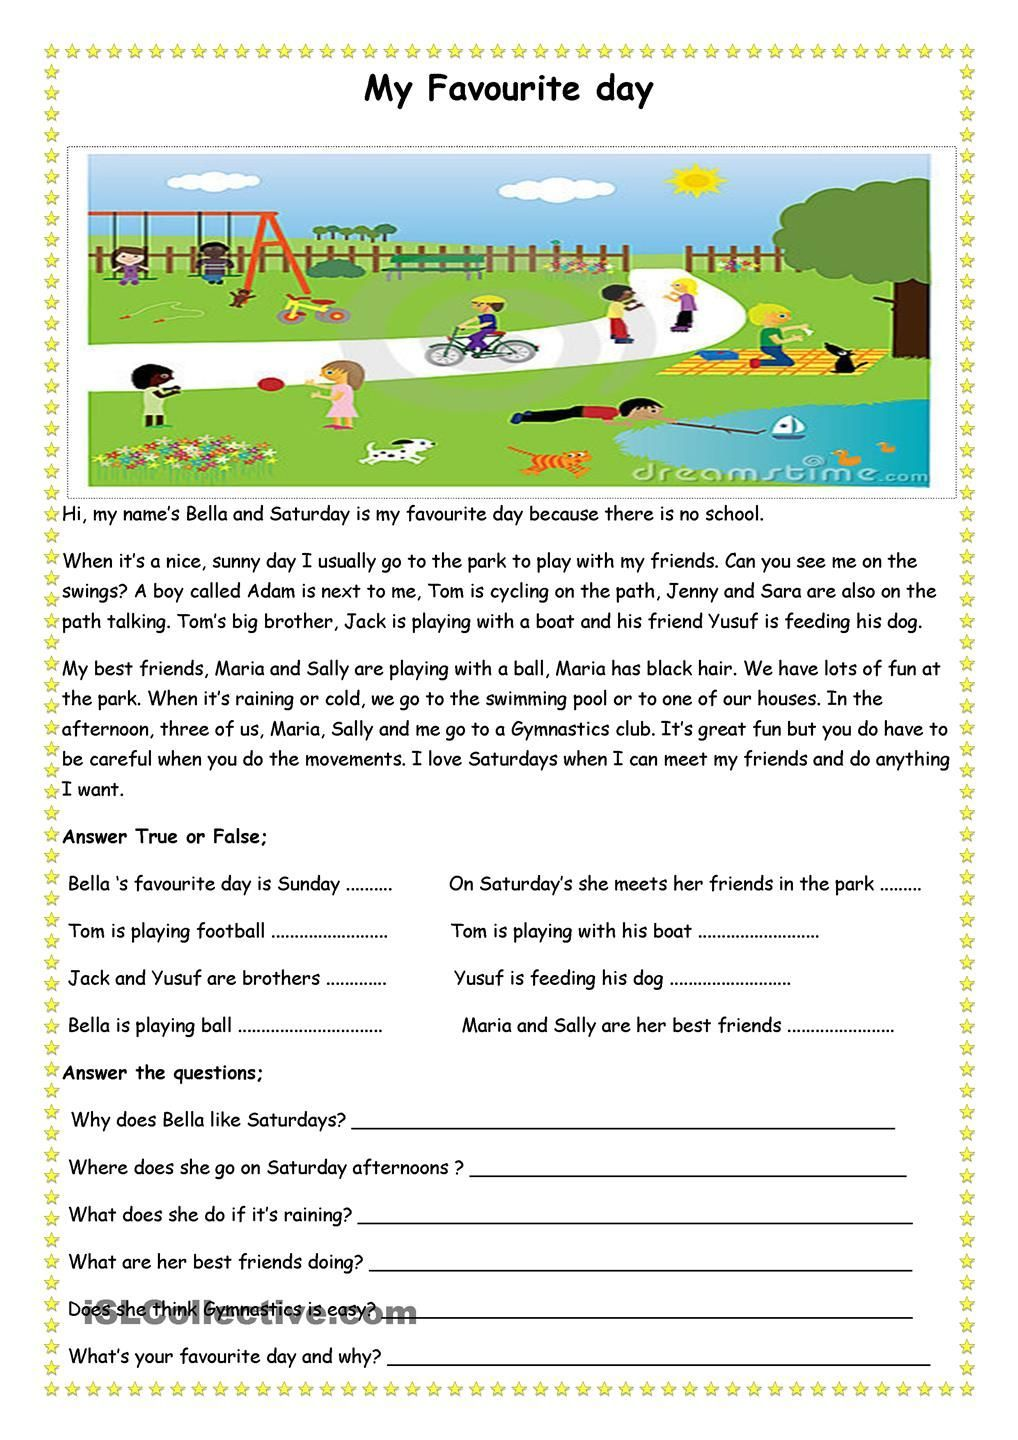 My Favourite Day Teach Reading Comprehension Worksheets English Reading Comprehension Worksheets Comprehension Worksheets Reading Comprehension [ 1440 x 1018 Pixel ]